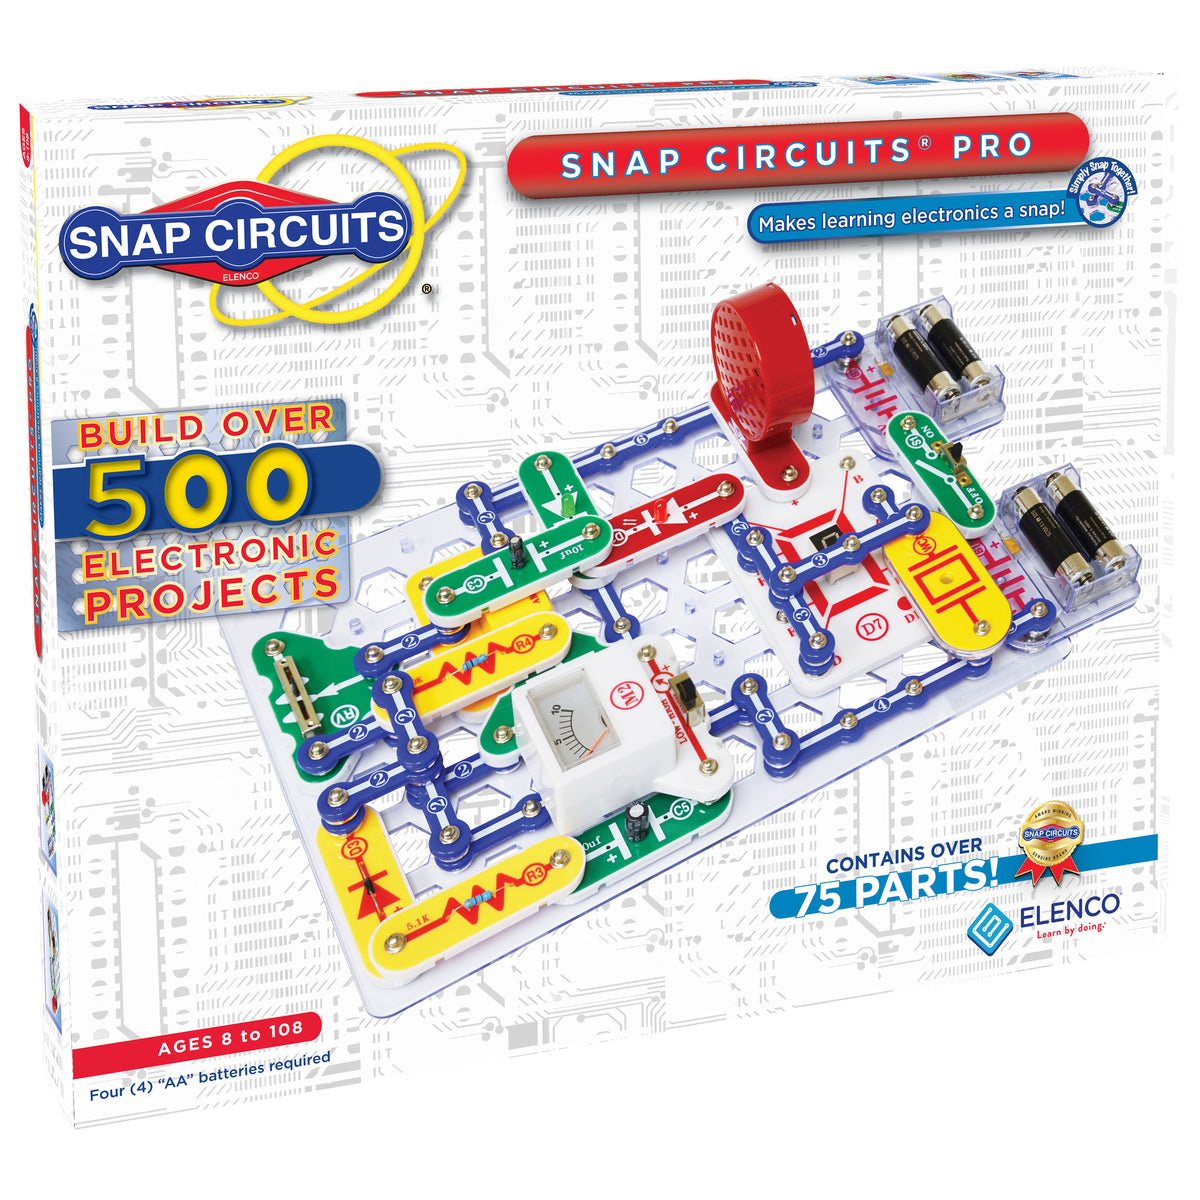 Snap Circuits Pro Plus Over 500 Projects